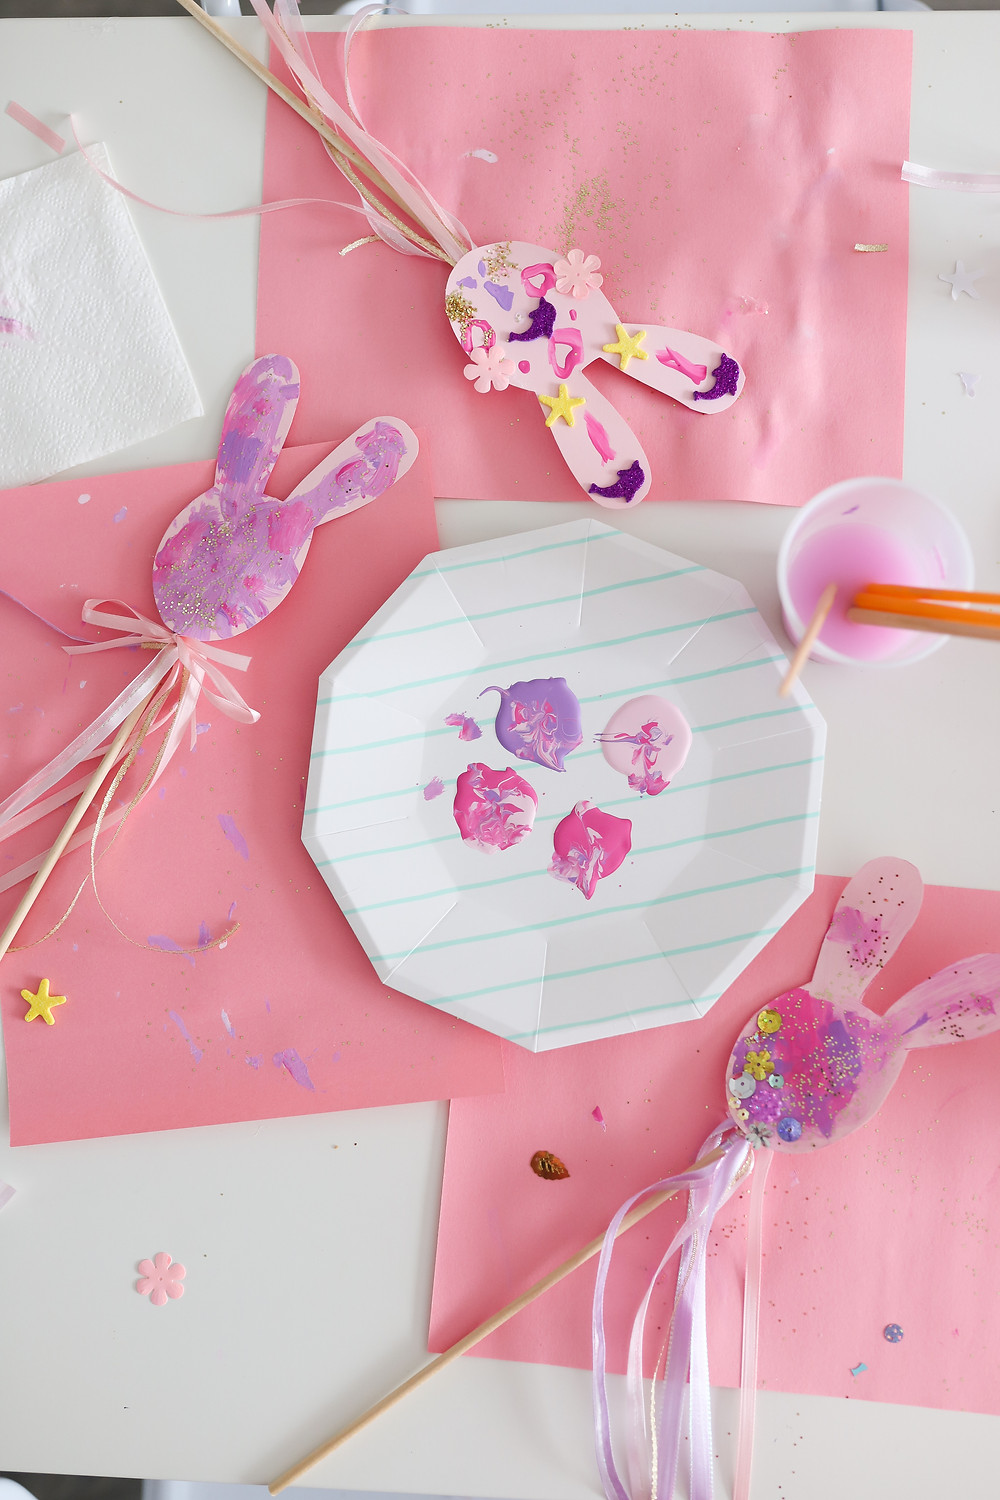 A bunny craft at a party table made with pink and purple paint and ribbons.